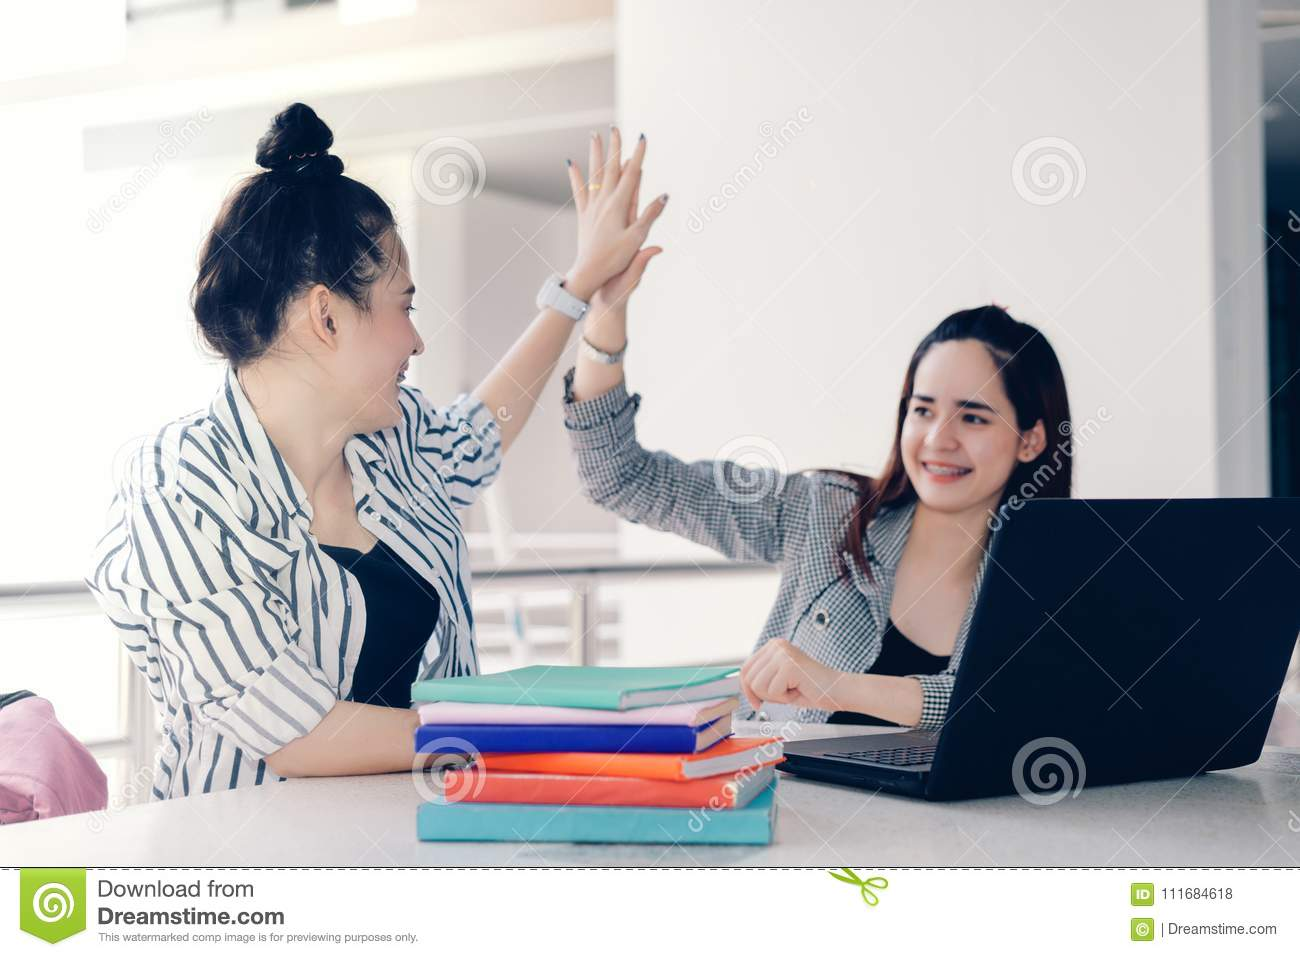 Students women teamwork high five together working study online or homework success project with laptop computer and meeting in un